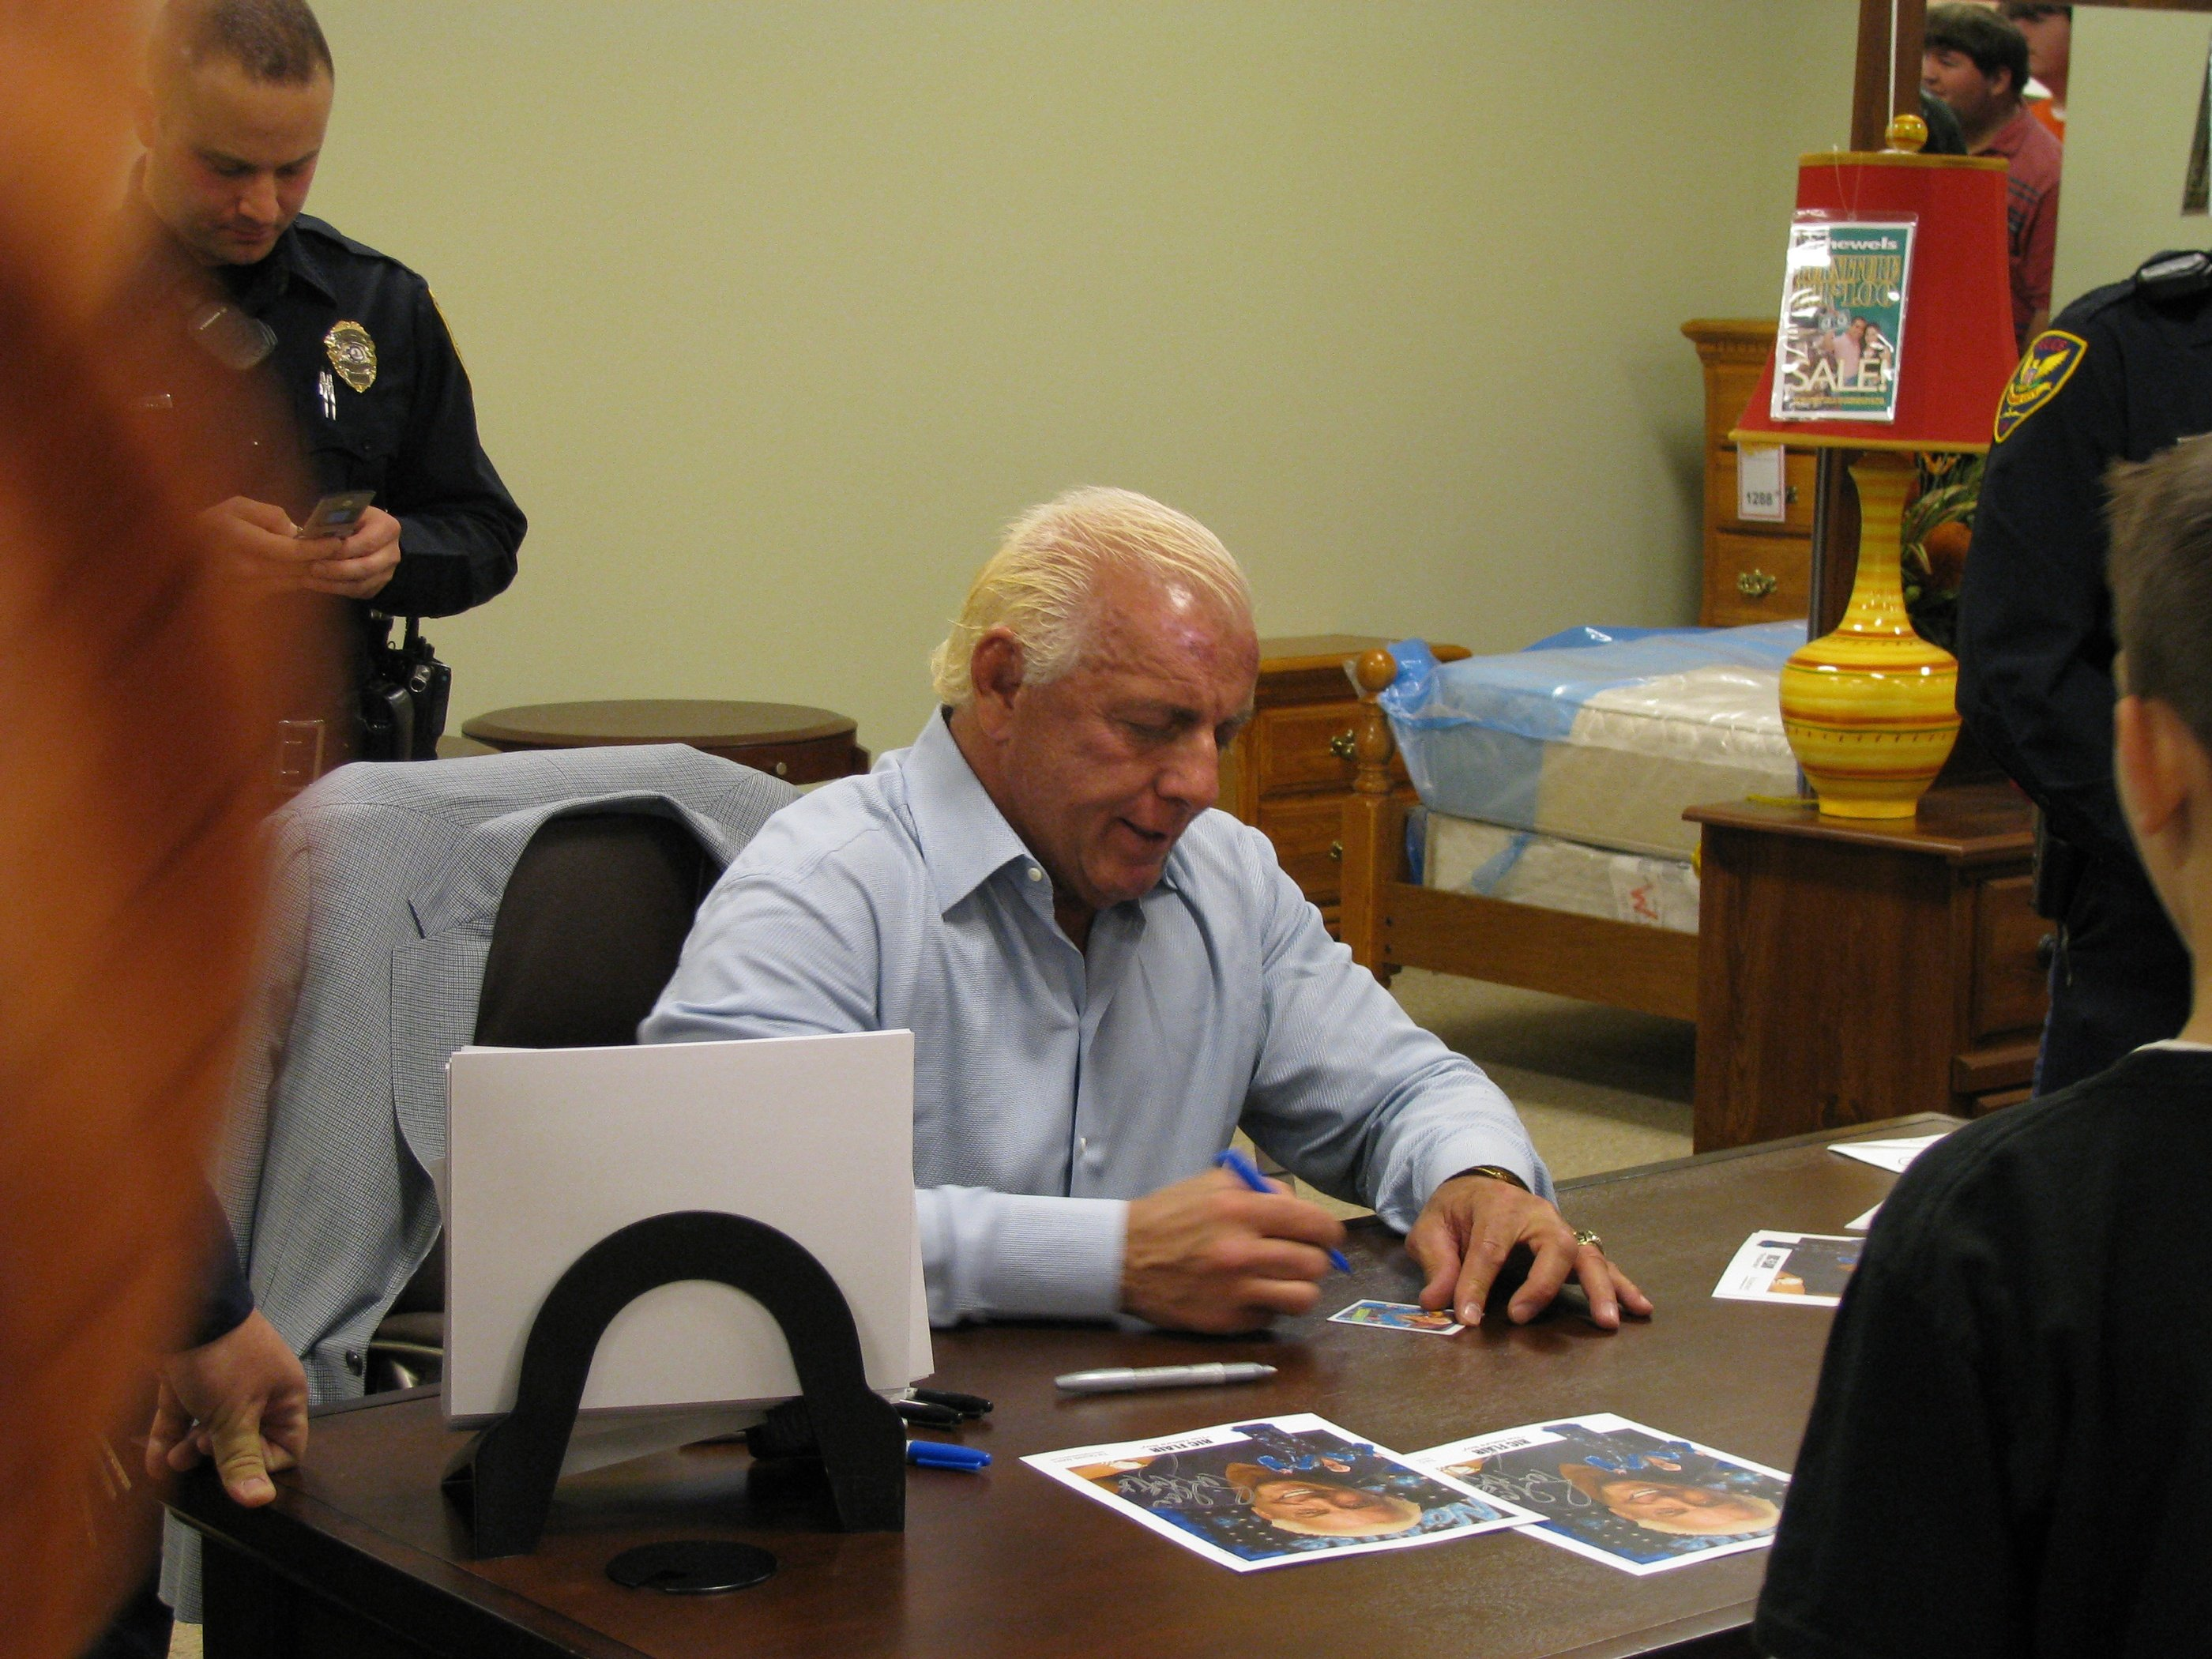 Ric Flair signing a trading card of himself